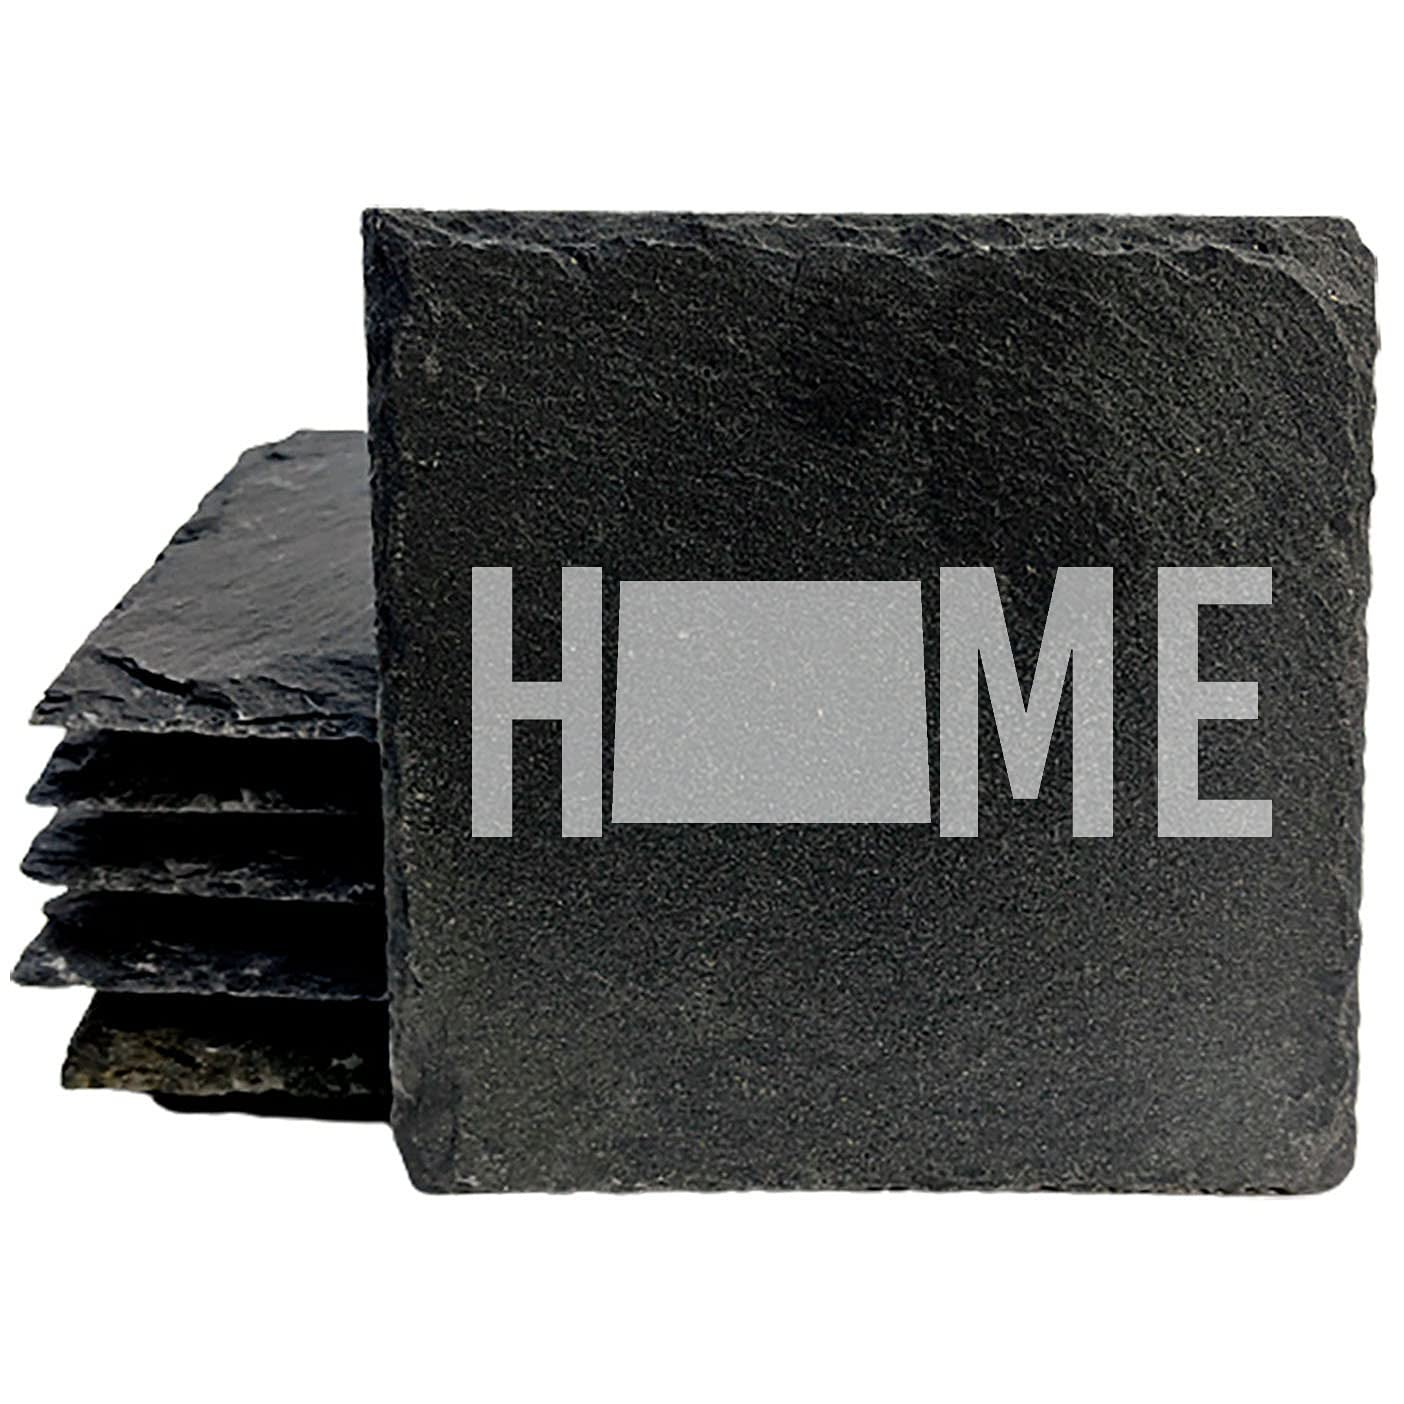 Colorado Home Coasters - Popularity Square 2021 spring and summer new set Slate of 6